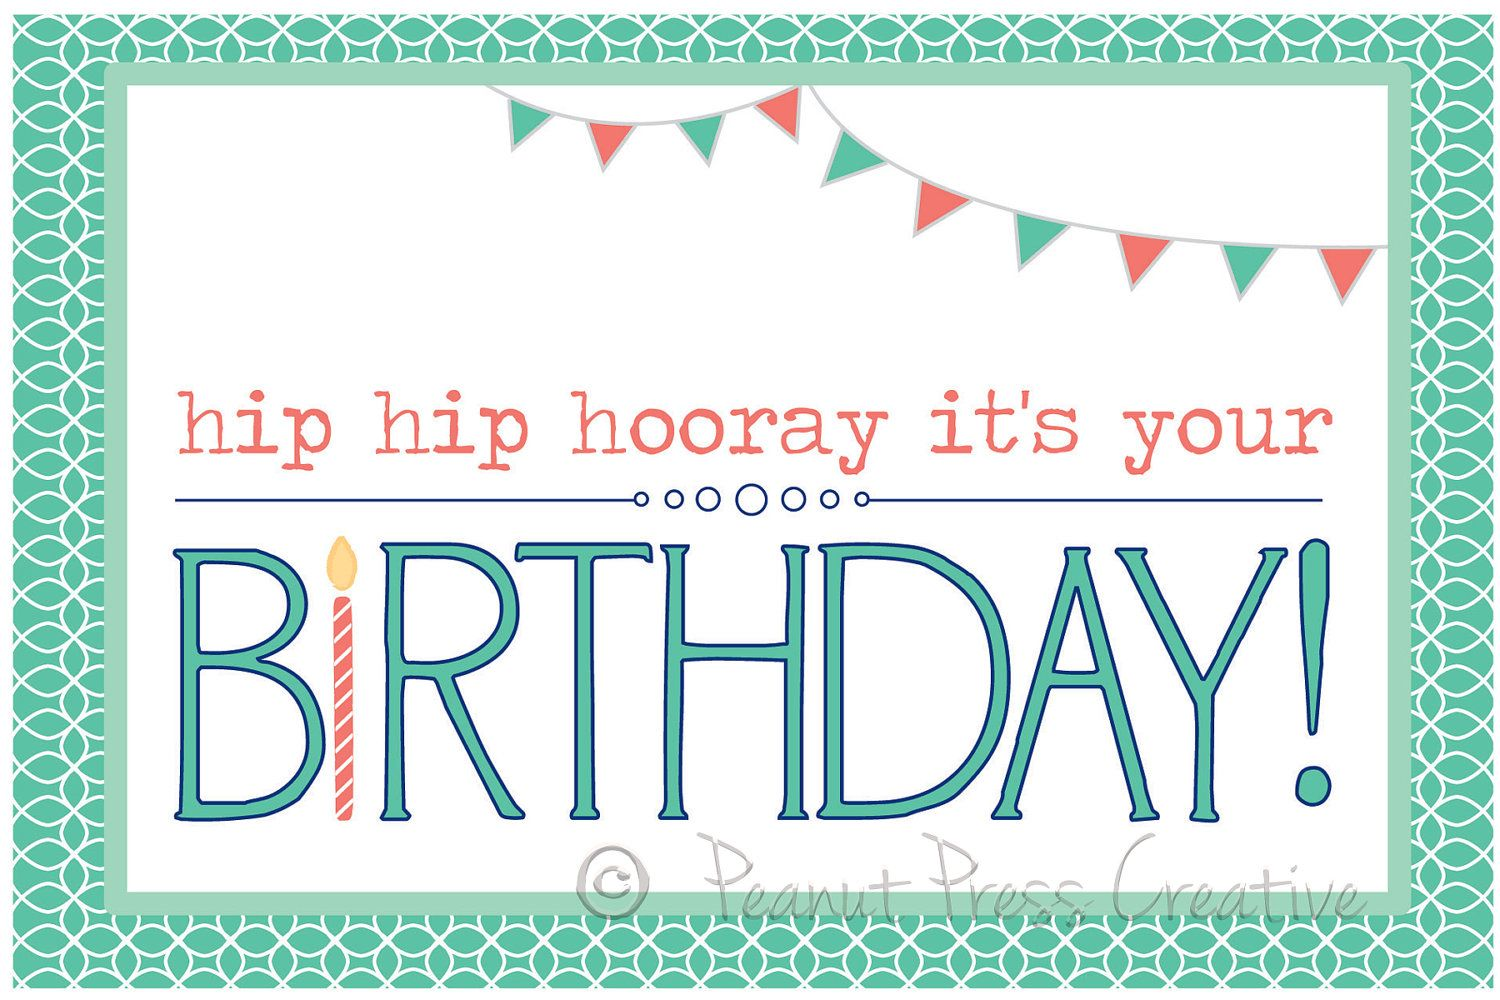 free printable birthday cards for boss ; a8aa1f1ddf023114504731d55a005ebd